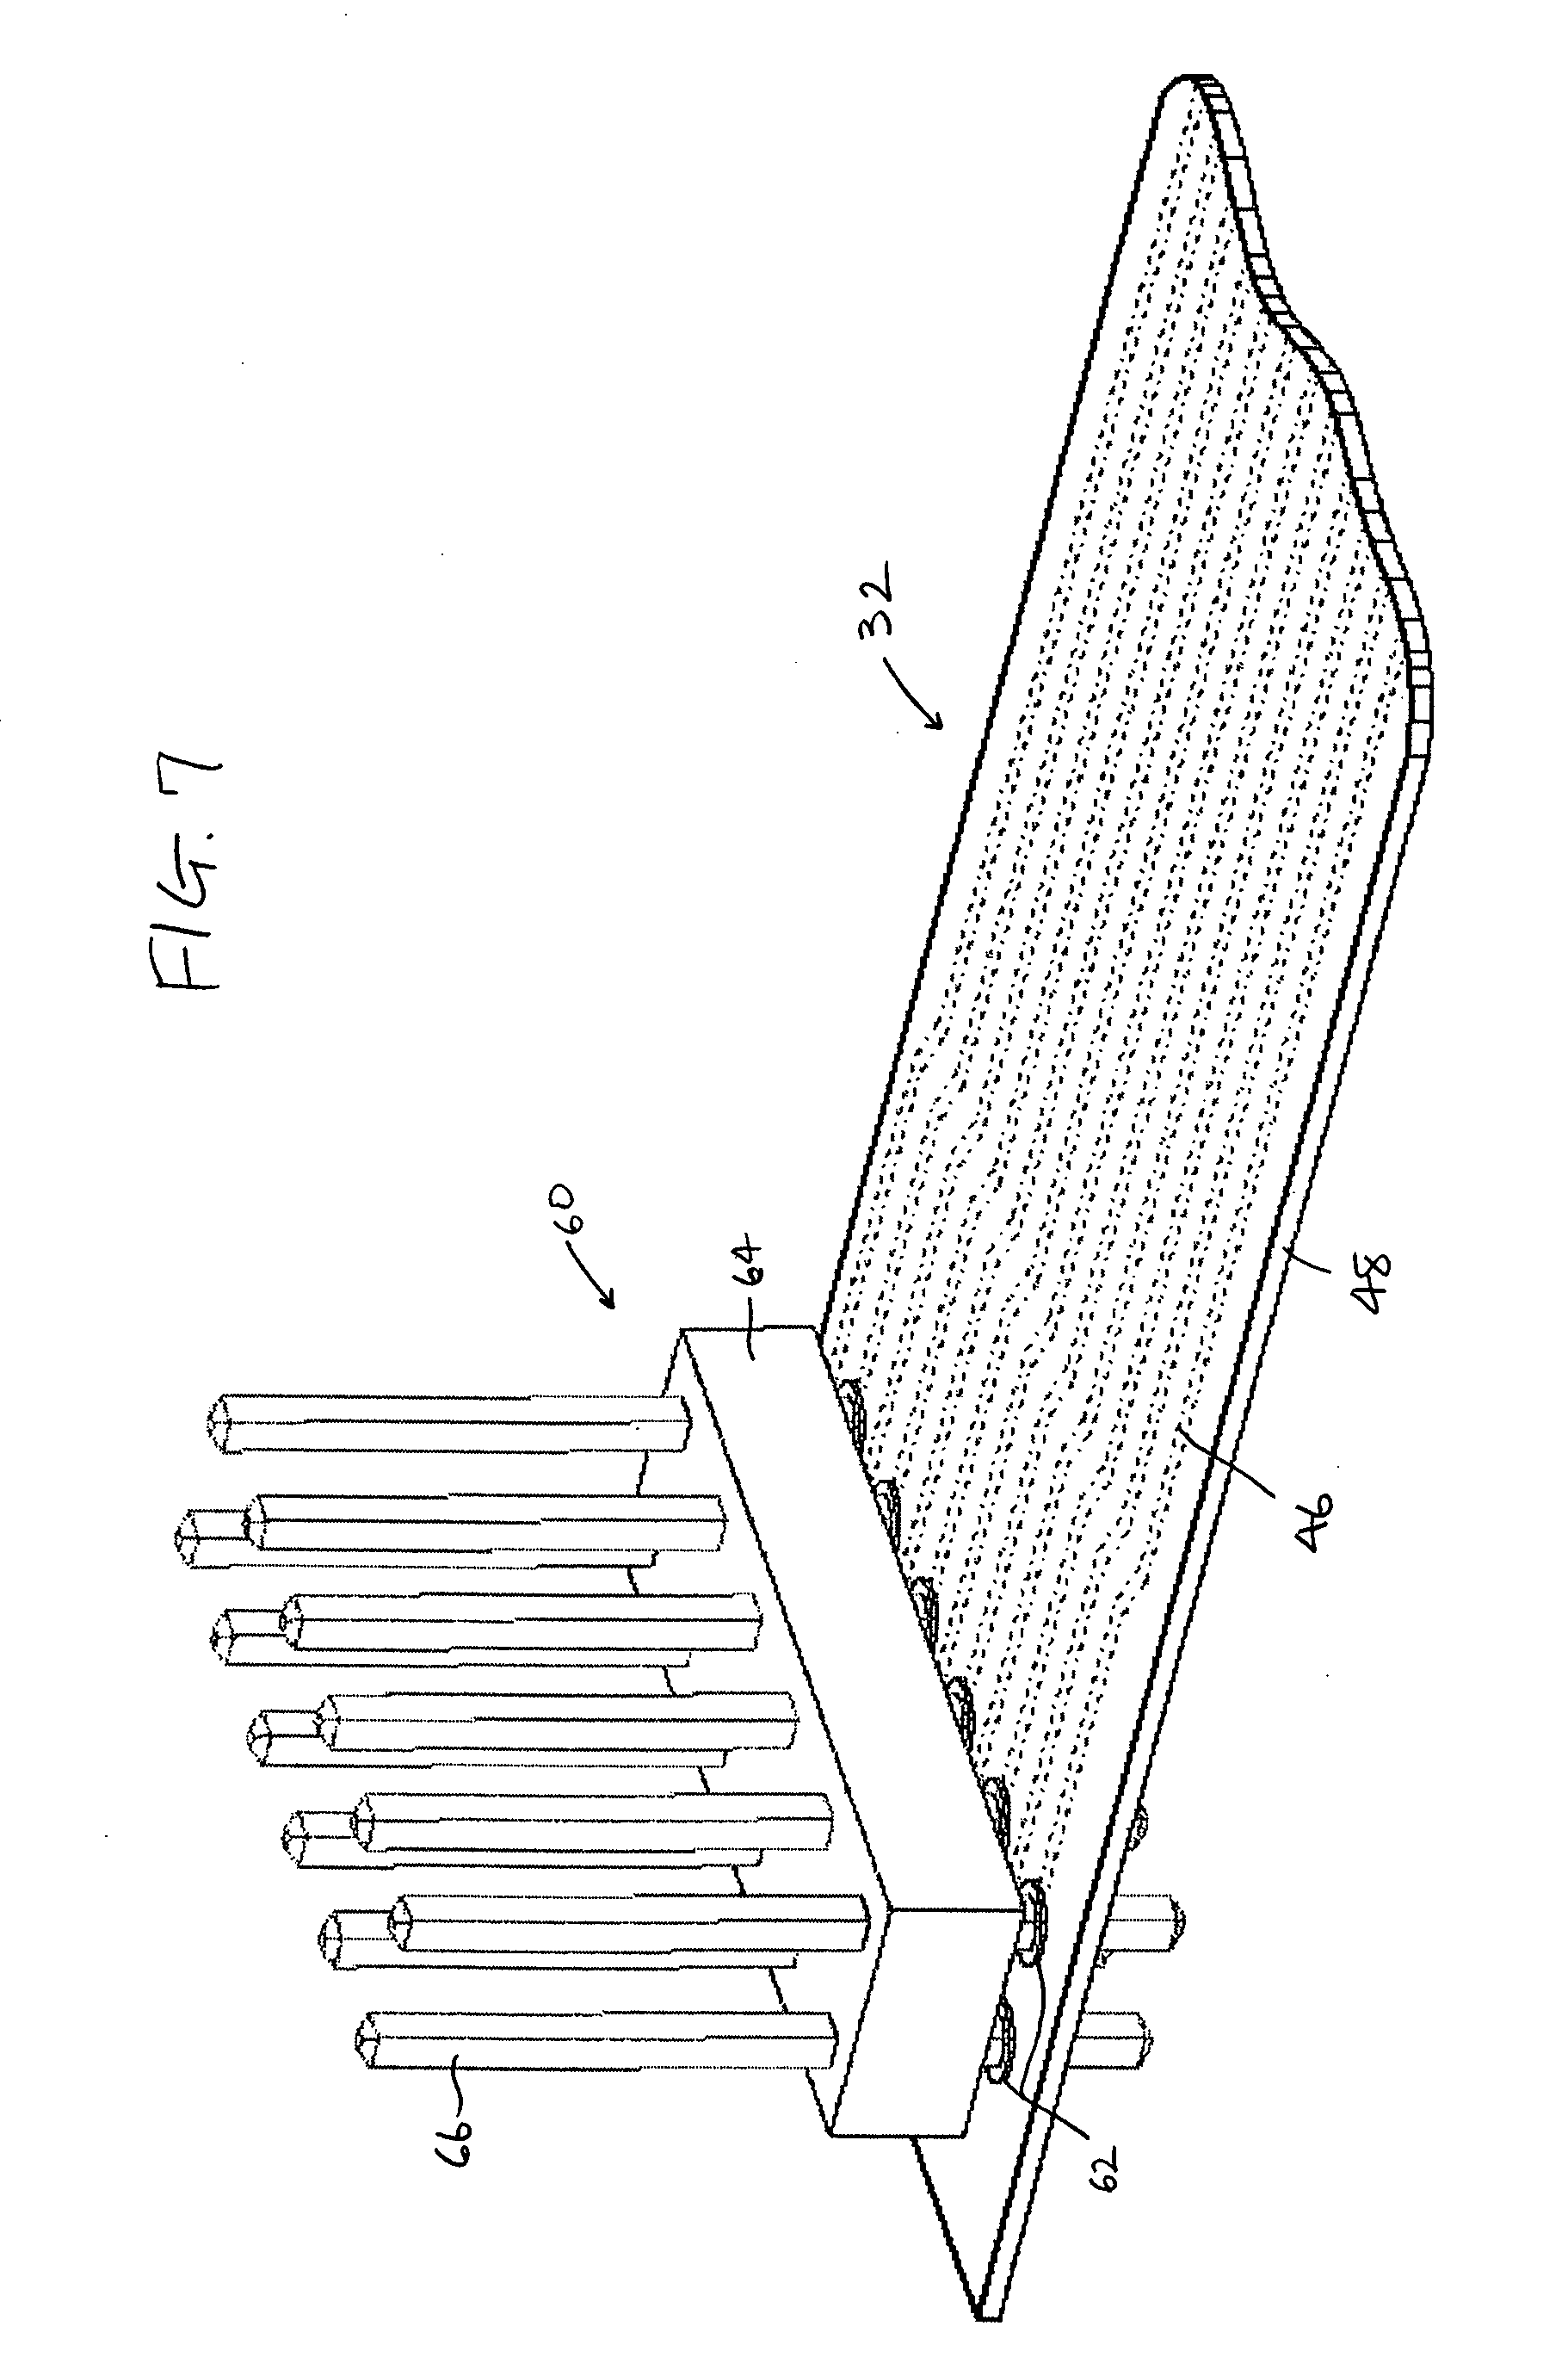 patent us20050048809 - flexible flat cable termination structure for a clockspring